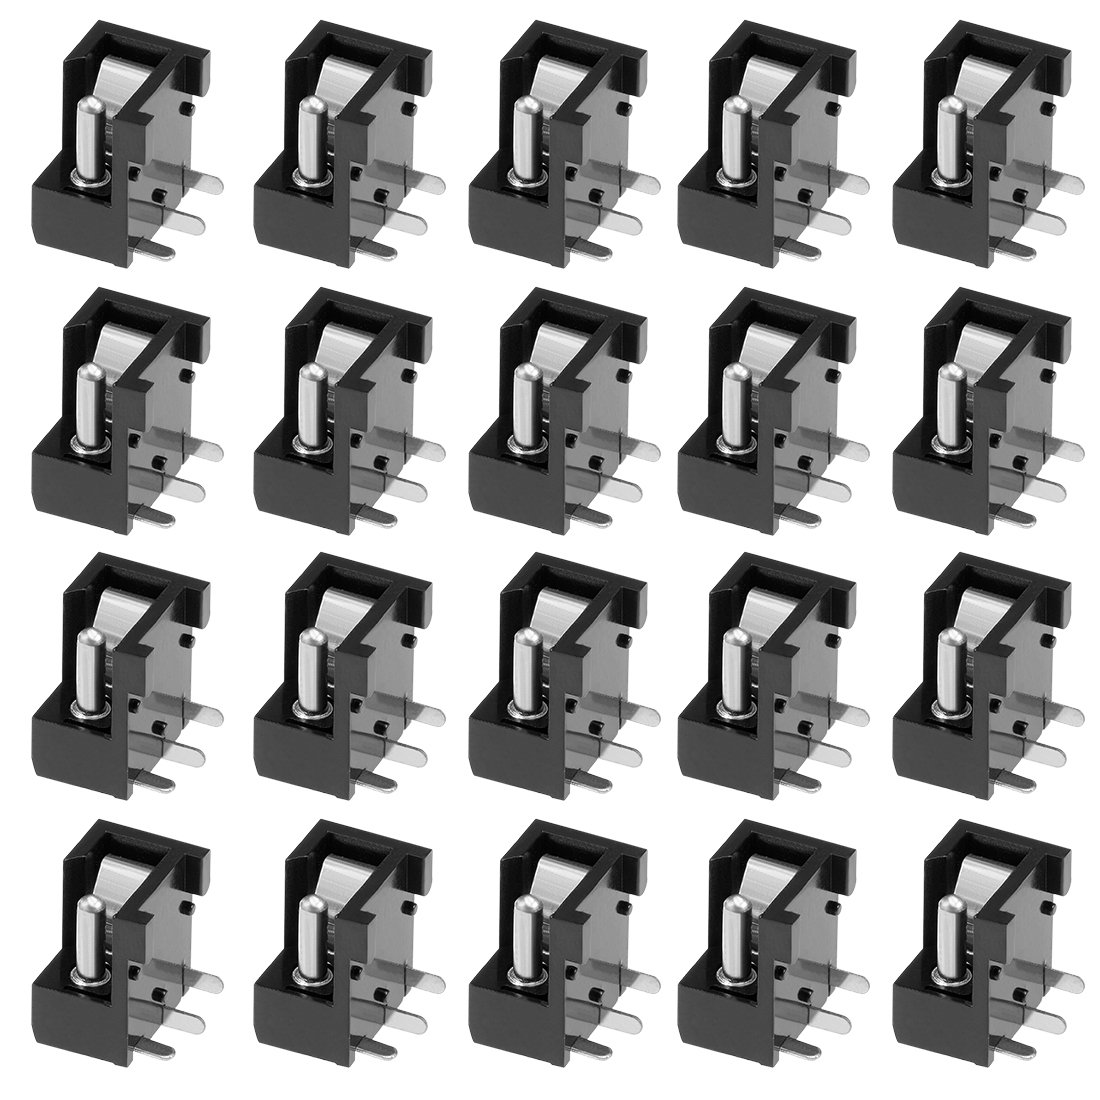 uxcell 2Pcs PCB Mount DC004 5.5mm x 2.1mm 3 Pin Audio Video DC Power Connector Socket Black